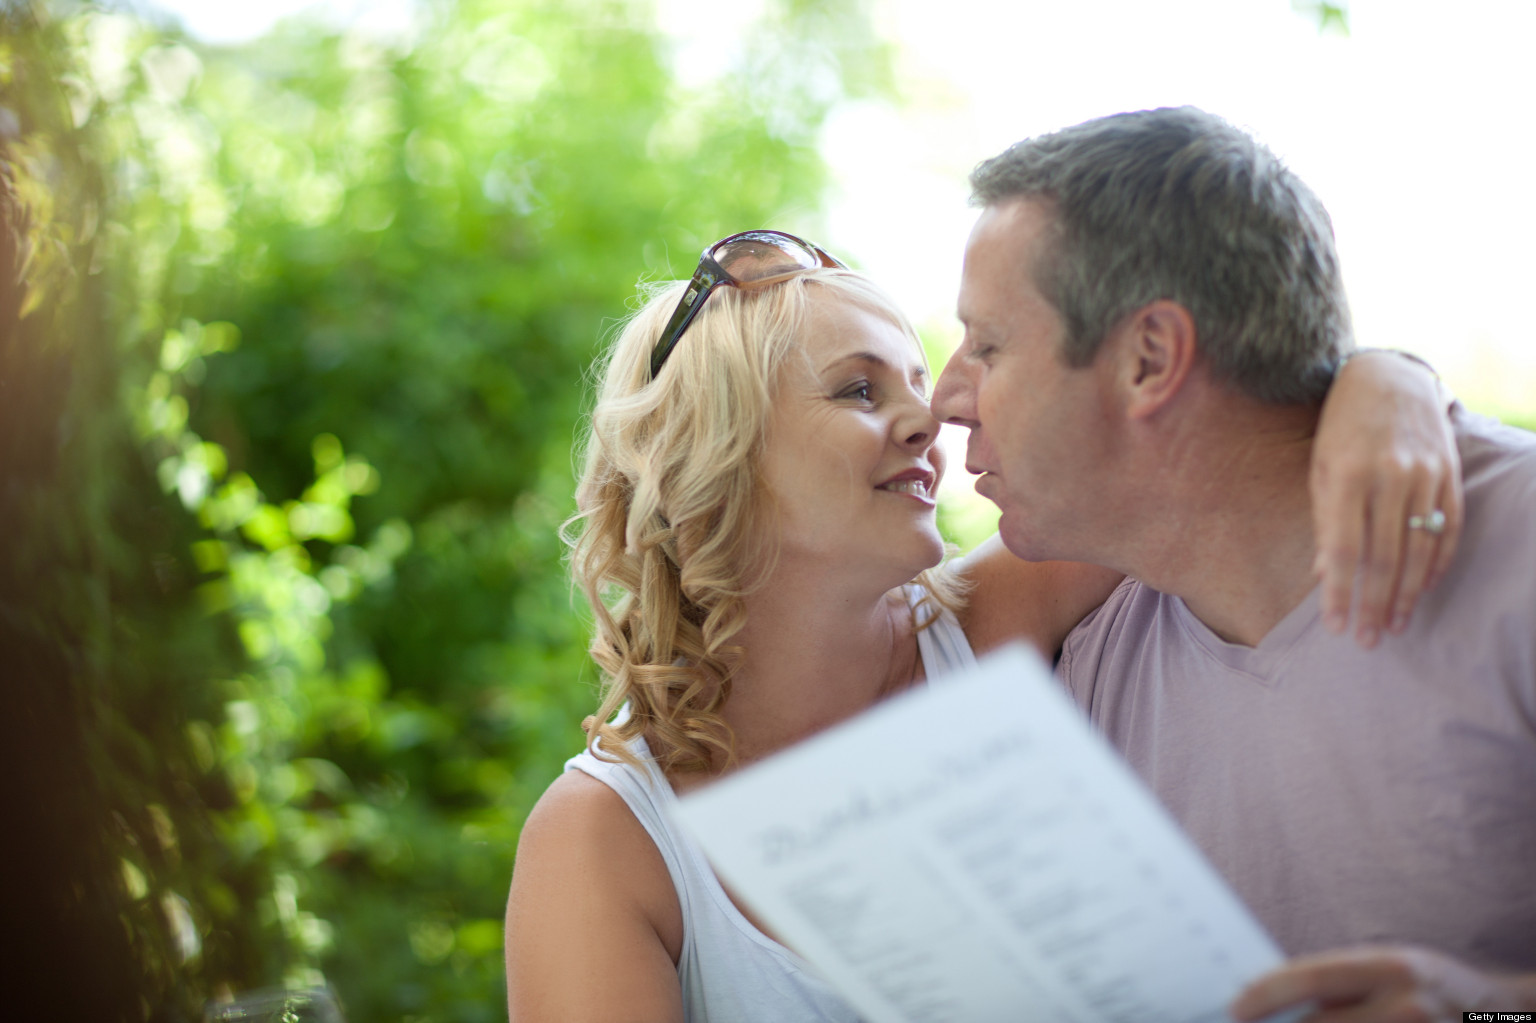 Seniors Dating Online Site Completely Free